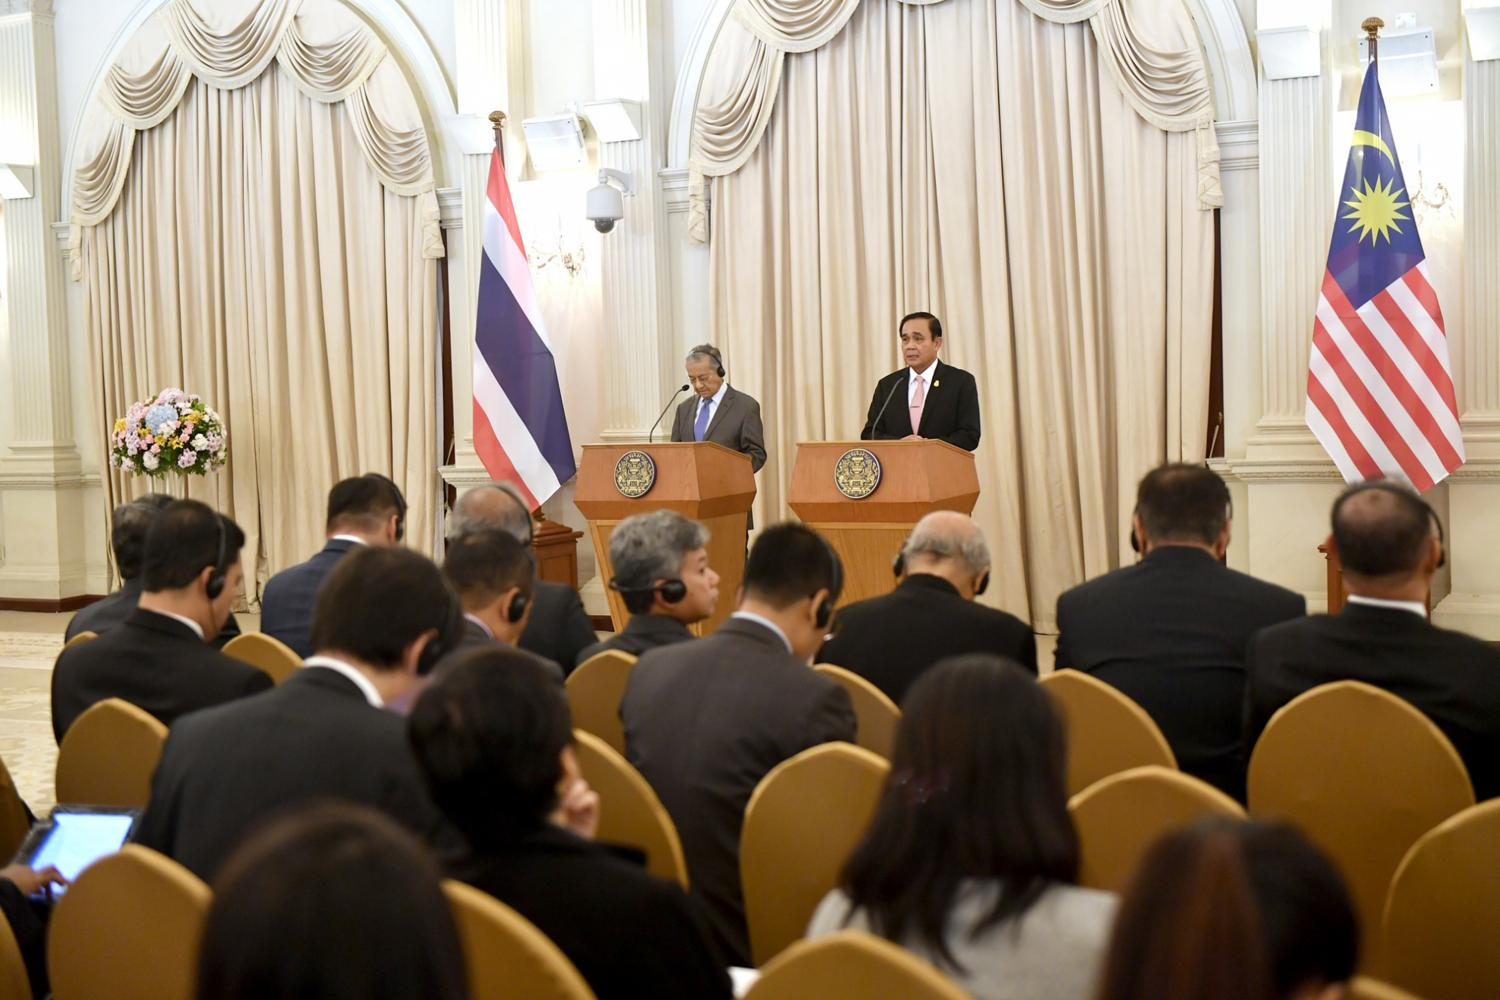 Prime Minister Prayut Chan-o-cha and his Malaysian counterpart Mahathir Mohammad give a joint press conference at Thailand's Government House on Oct 23 last year. (Picture courtesy of Government House)